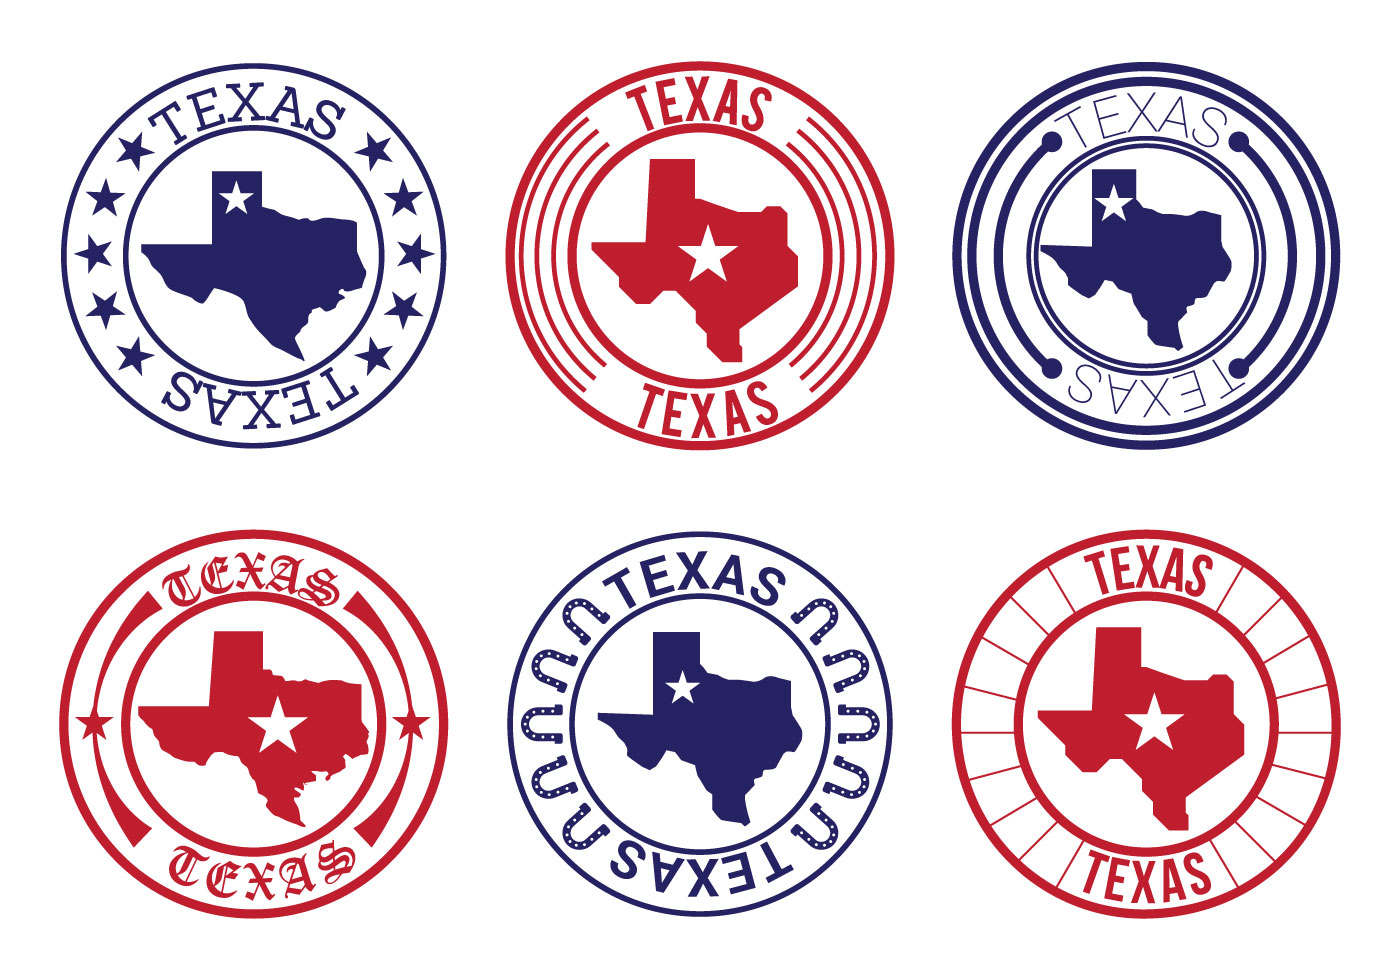 Texas Star Free Vector Art 6284 Free Downloads